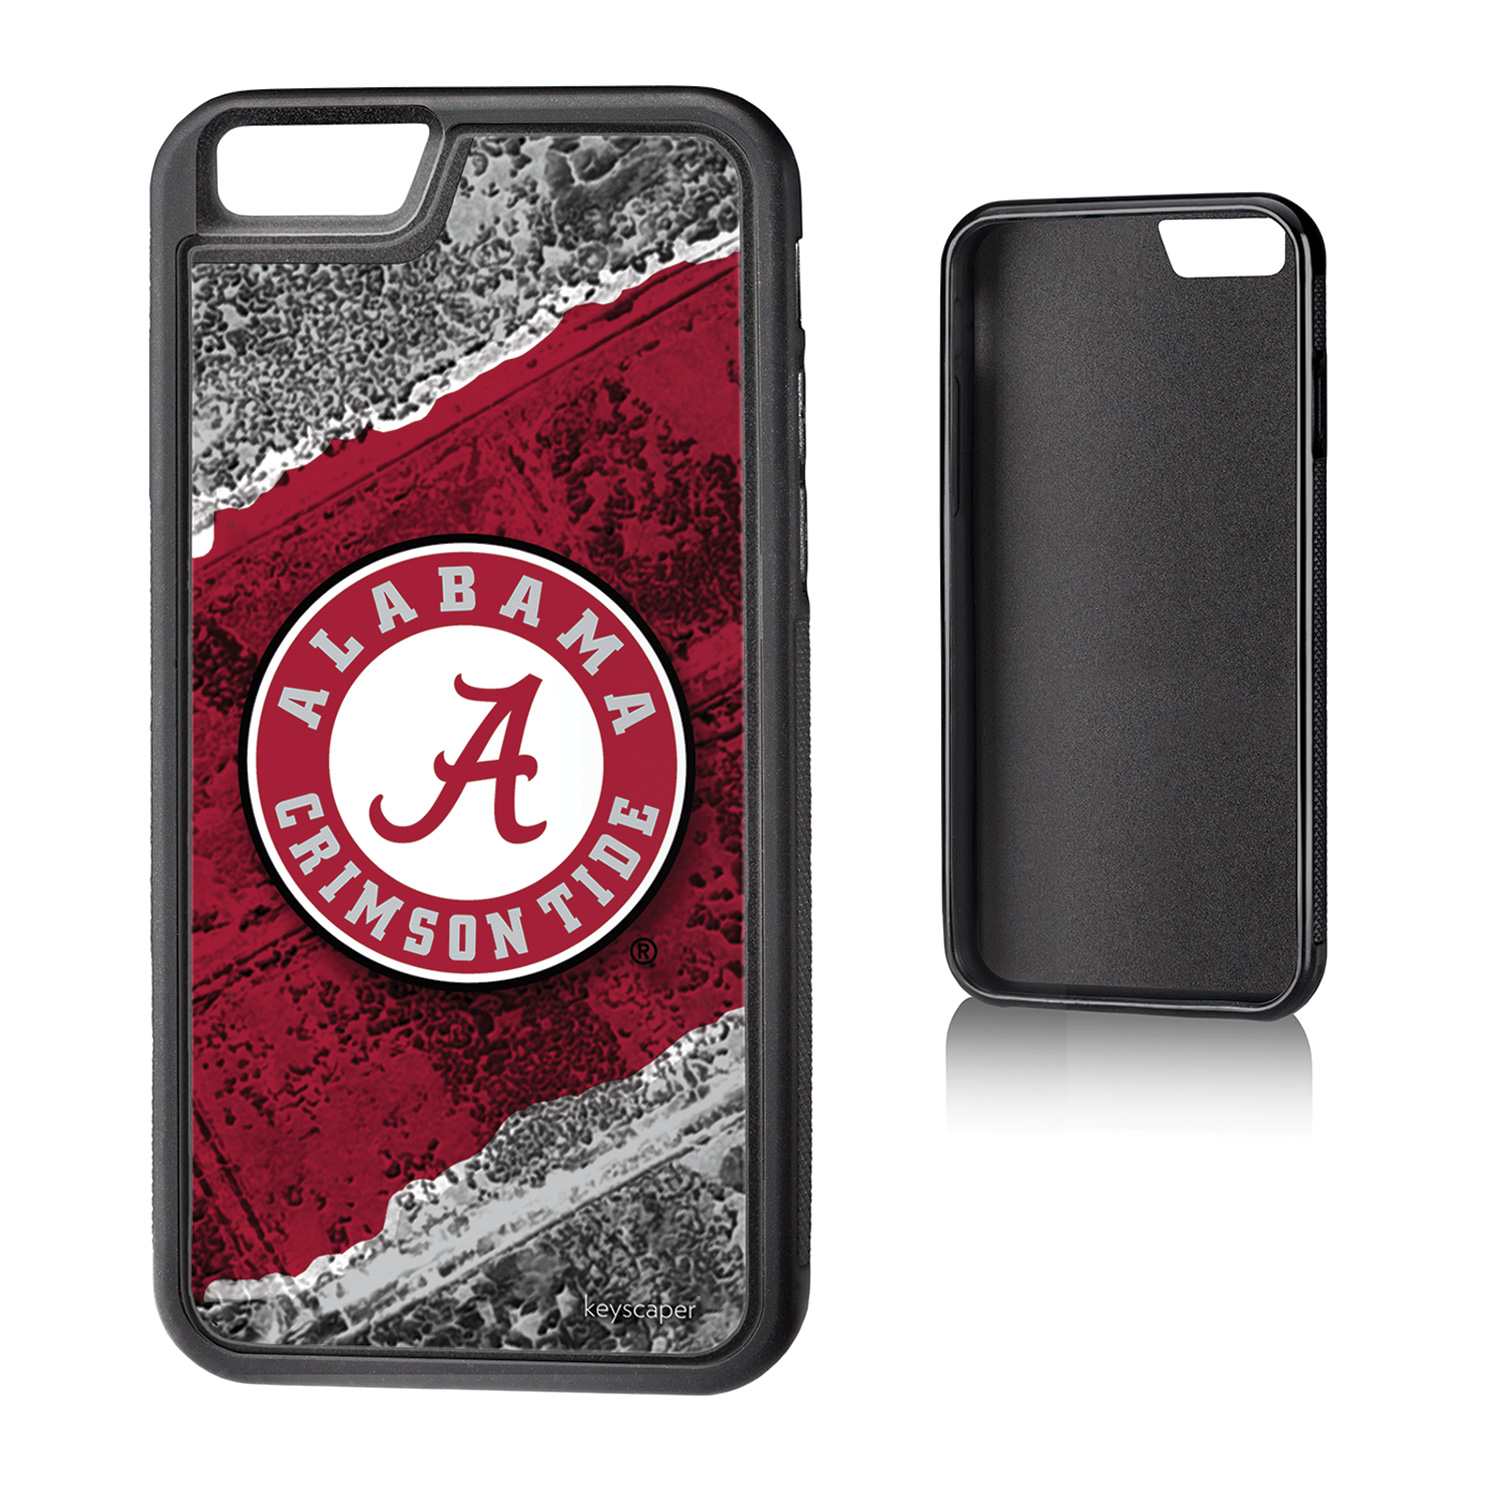 Alabama Crimson Tide iPhone 6 (4.7 inch) Bumper Case